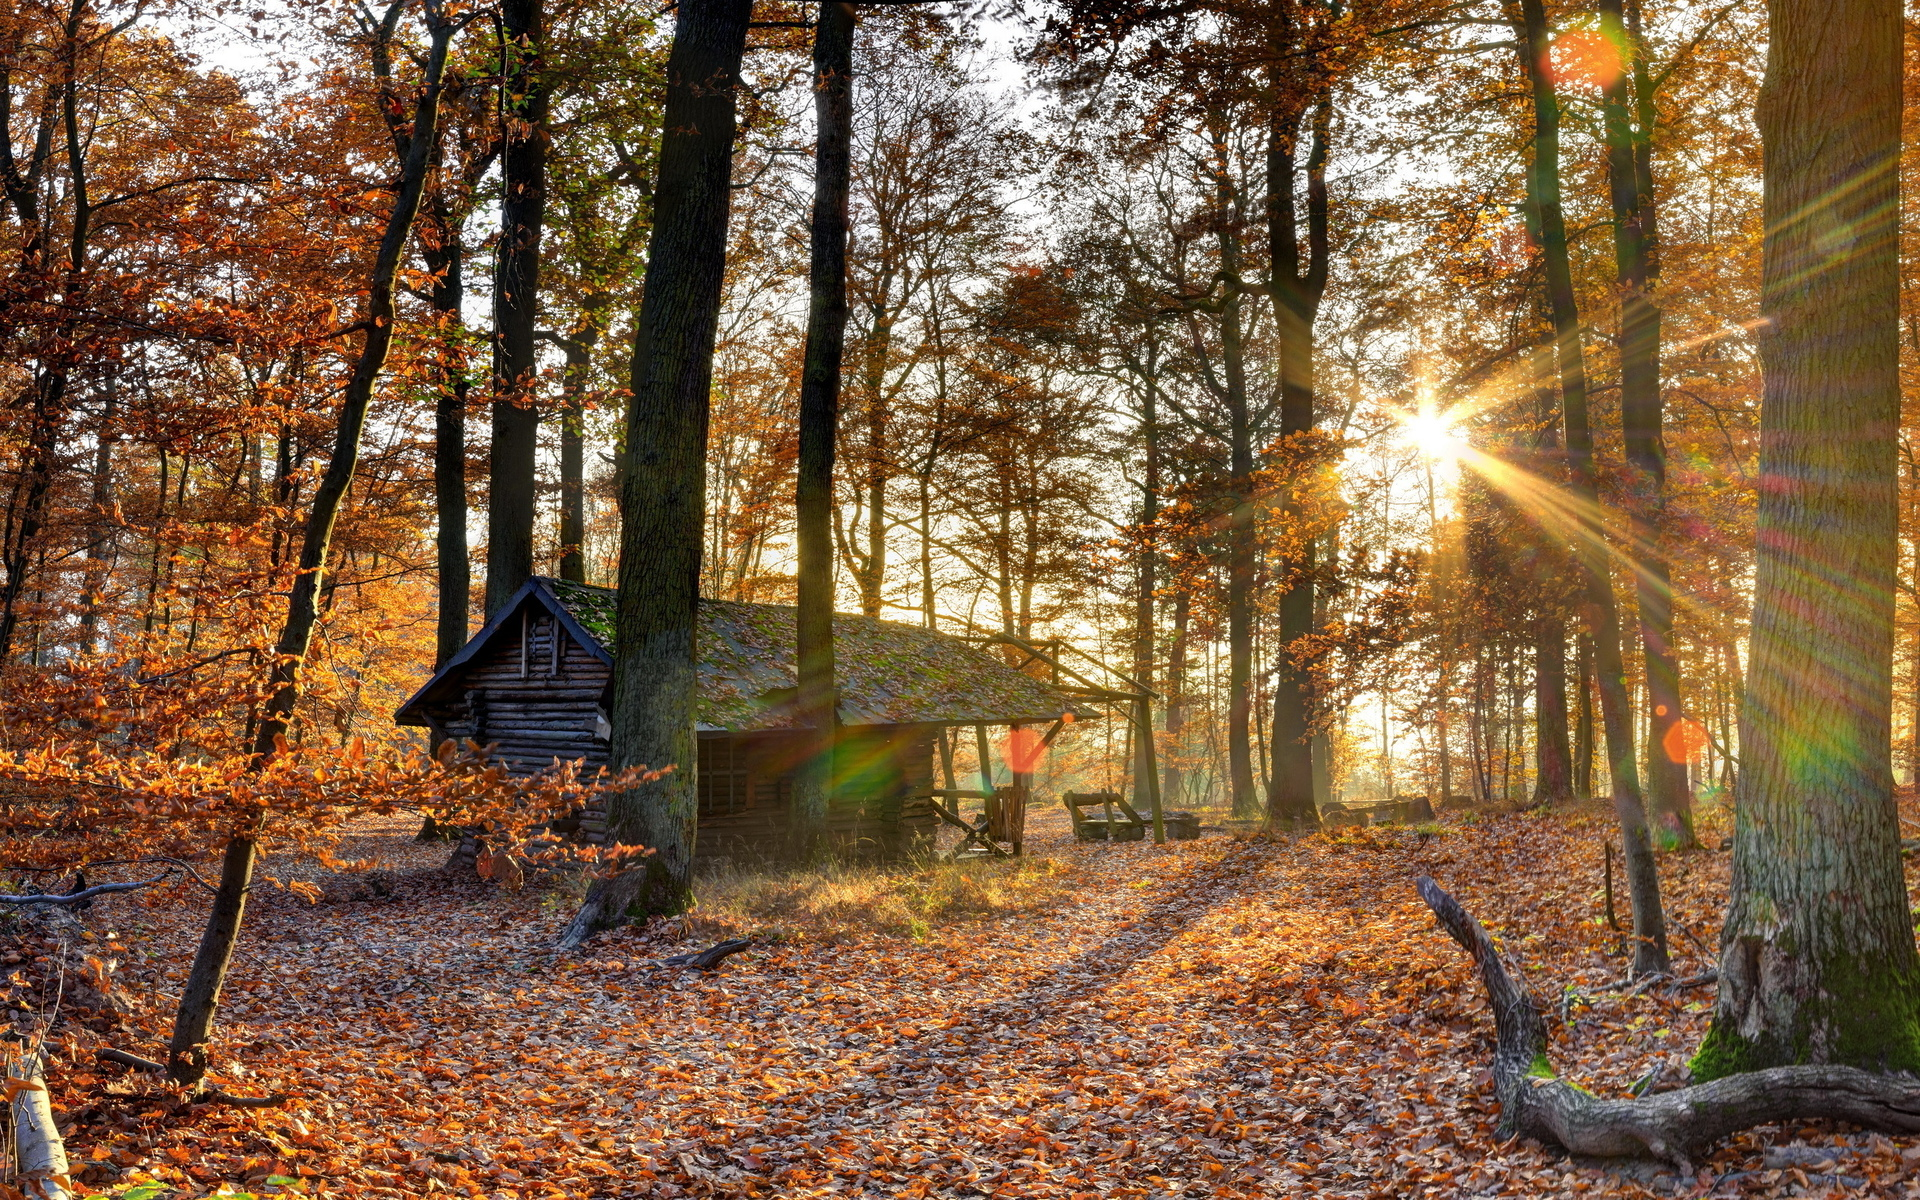 world architecture buildings houses rustic decay ruins nature landscapes trees forest fall autumn seasons leaves color sunlight sunbeam sun sunrise sunset